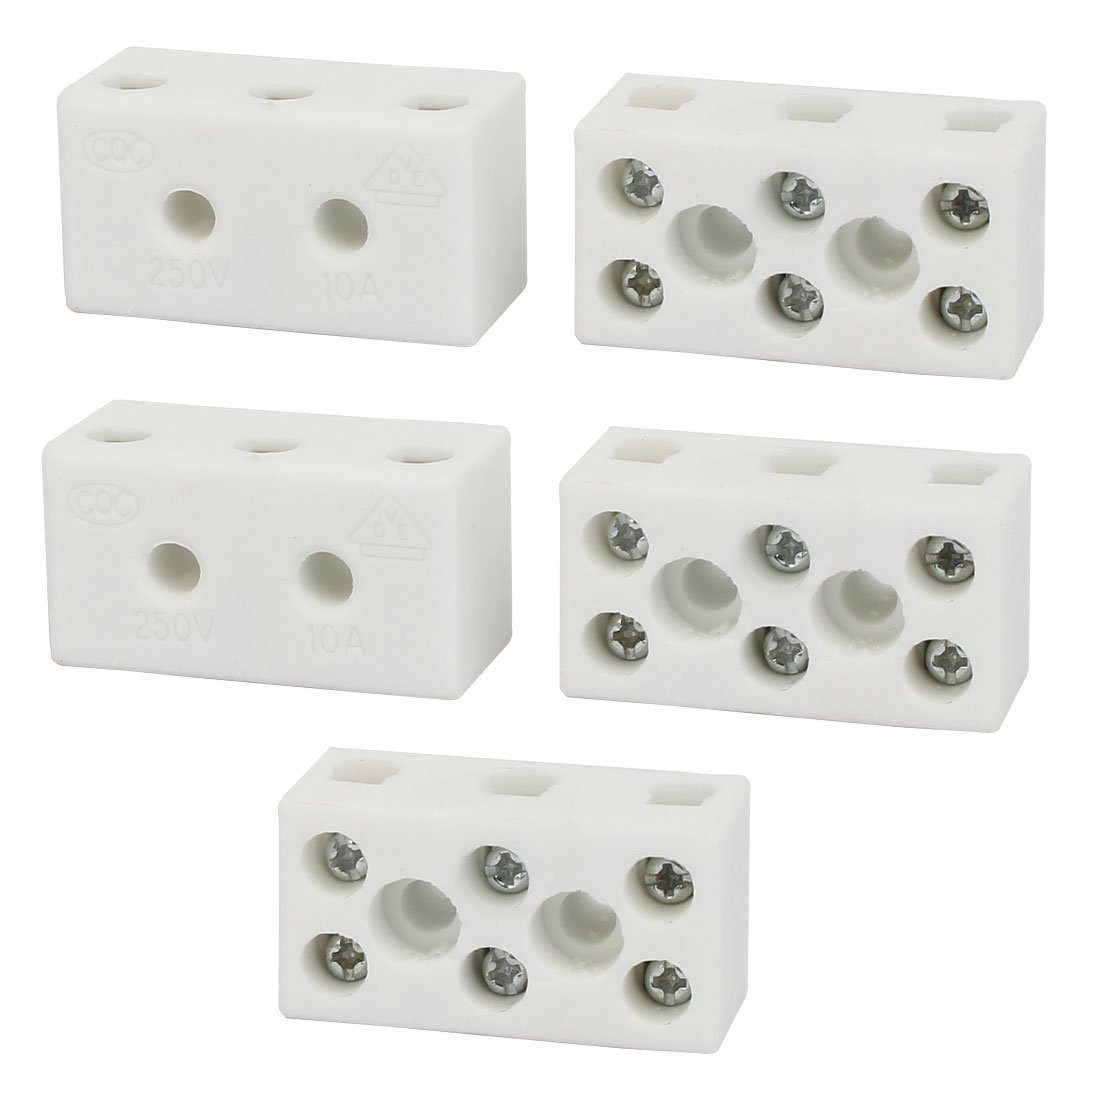 uxcell 250V 10A 3 Position 8 Hole Ceramic Terminal Blocks Wire Connectors 5pcs